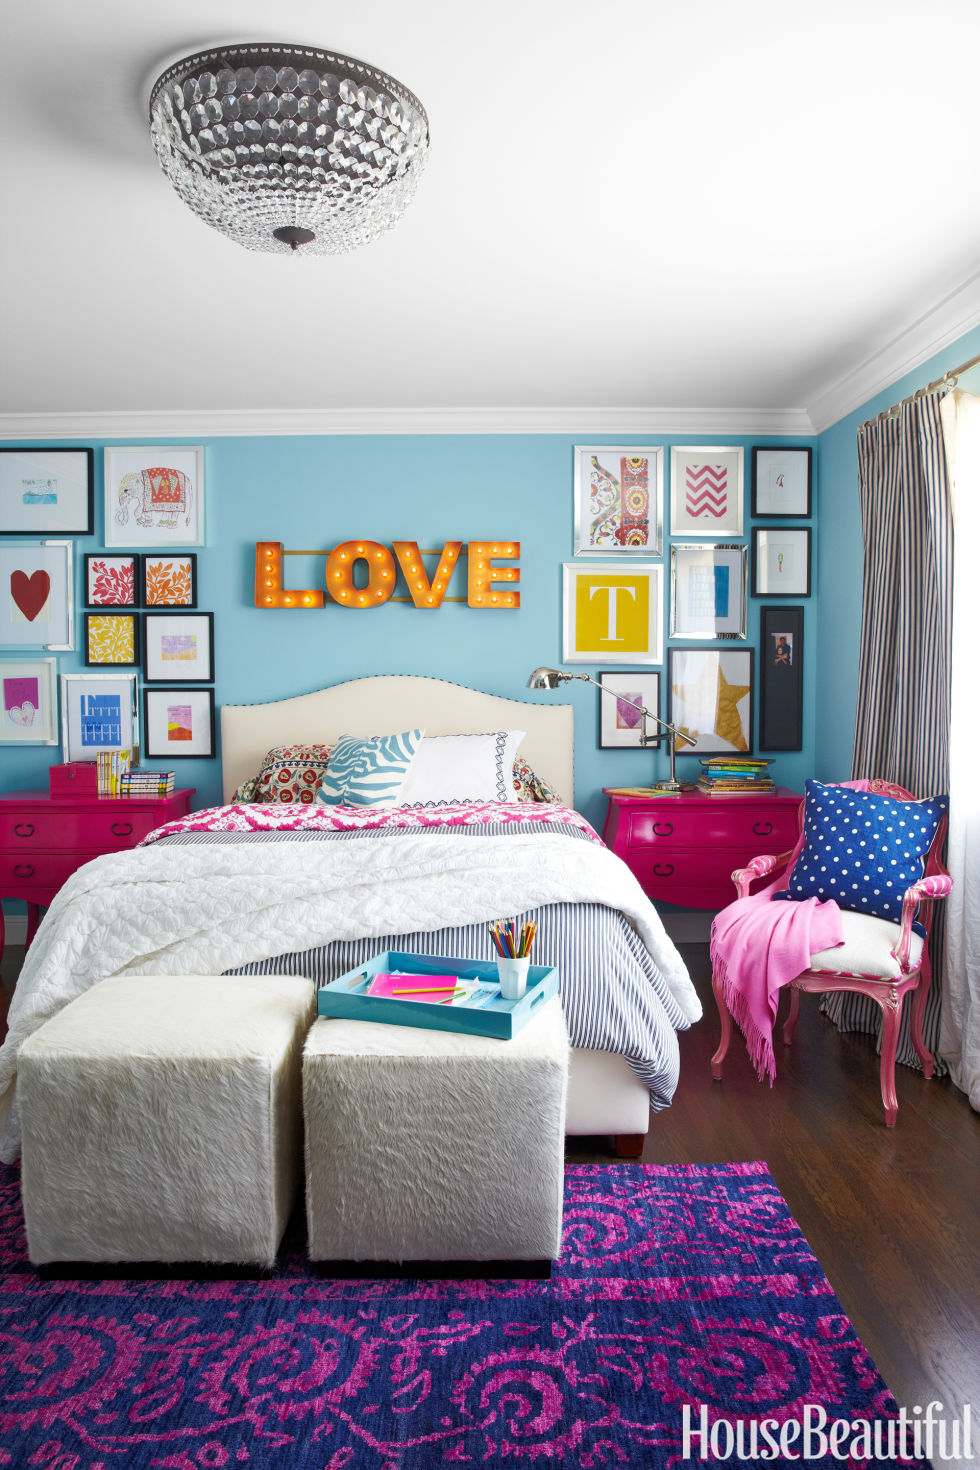 Bedroom color design for girls - Bedroom Color Design For Girls 29